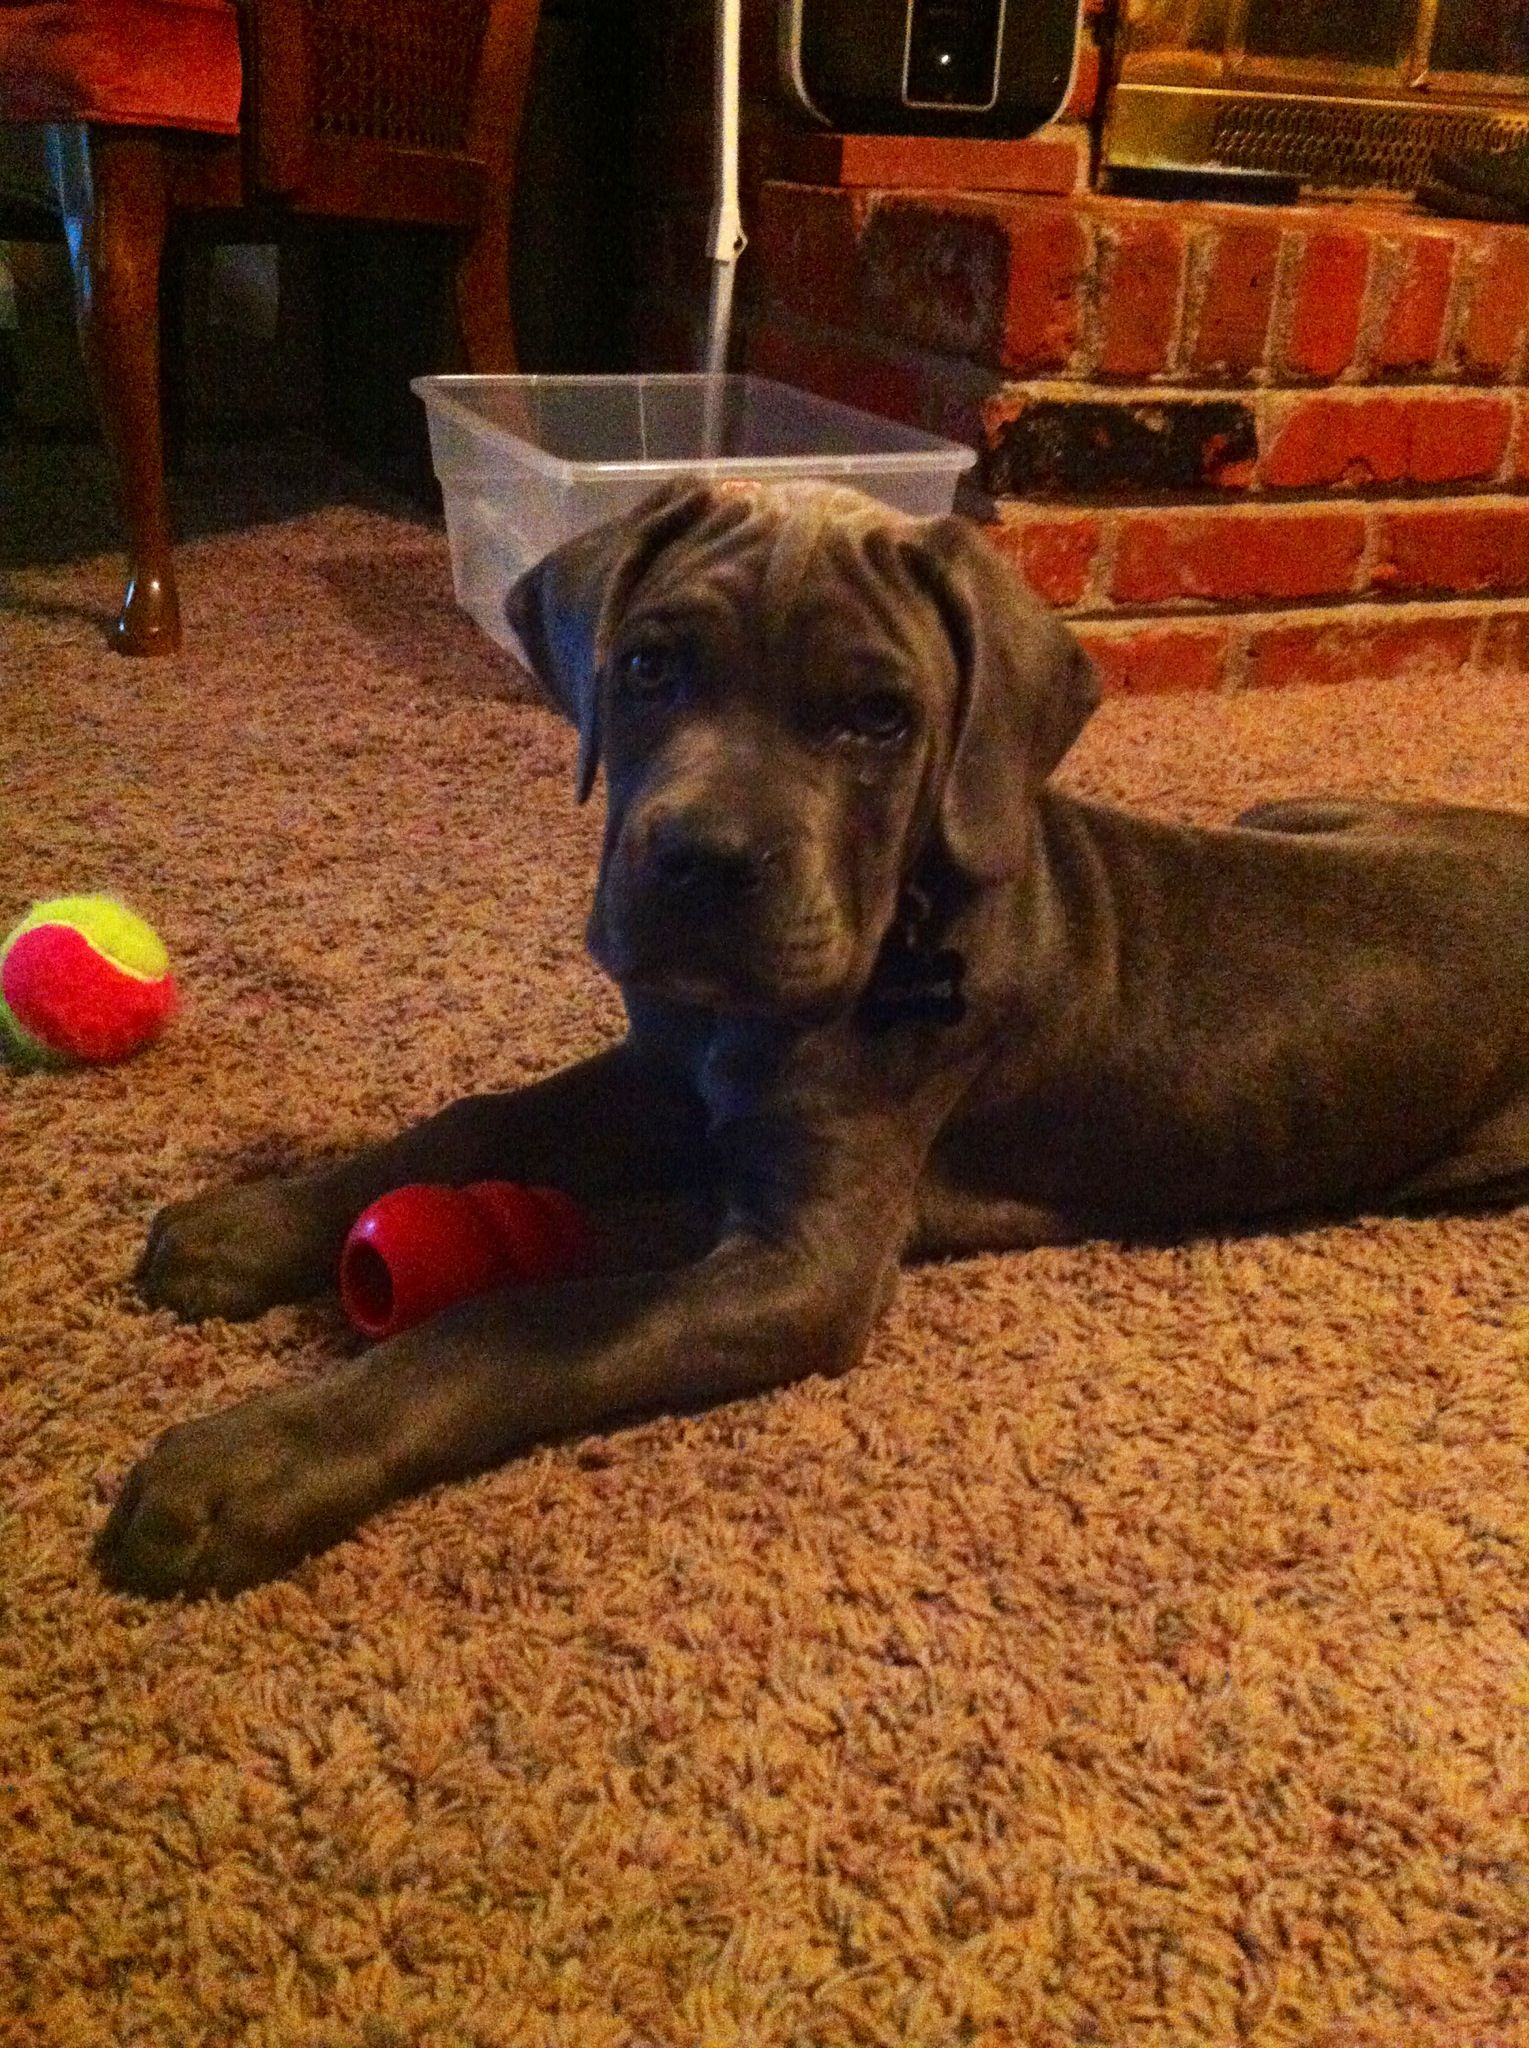 This is Memphis, our 10 week old Blue Cane Corso puppy that I got my wife for her birthday.